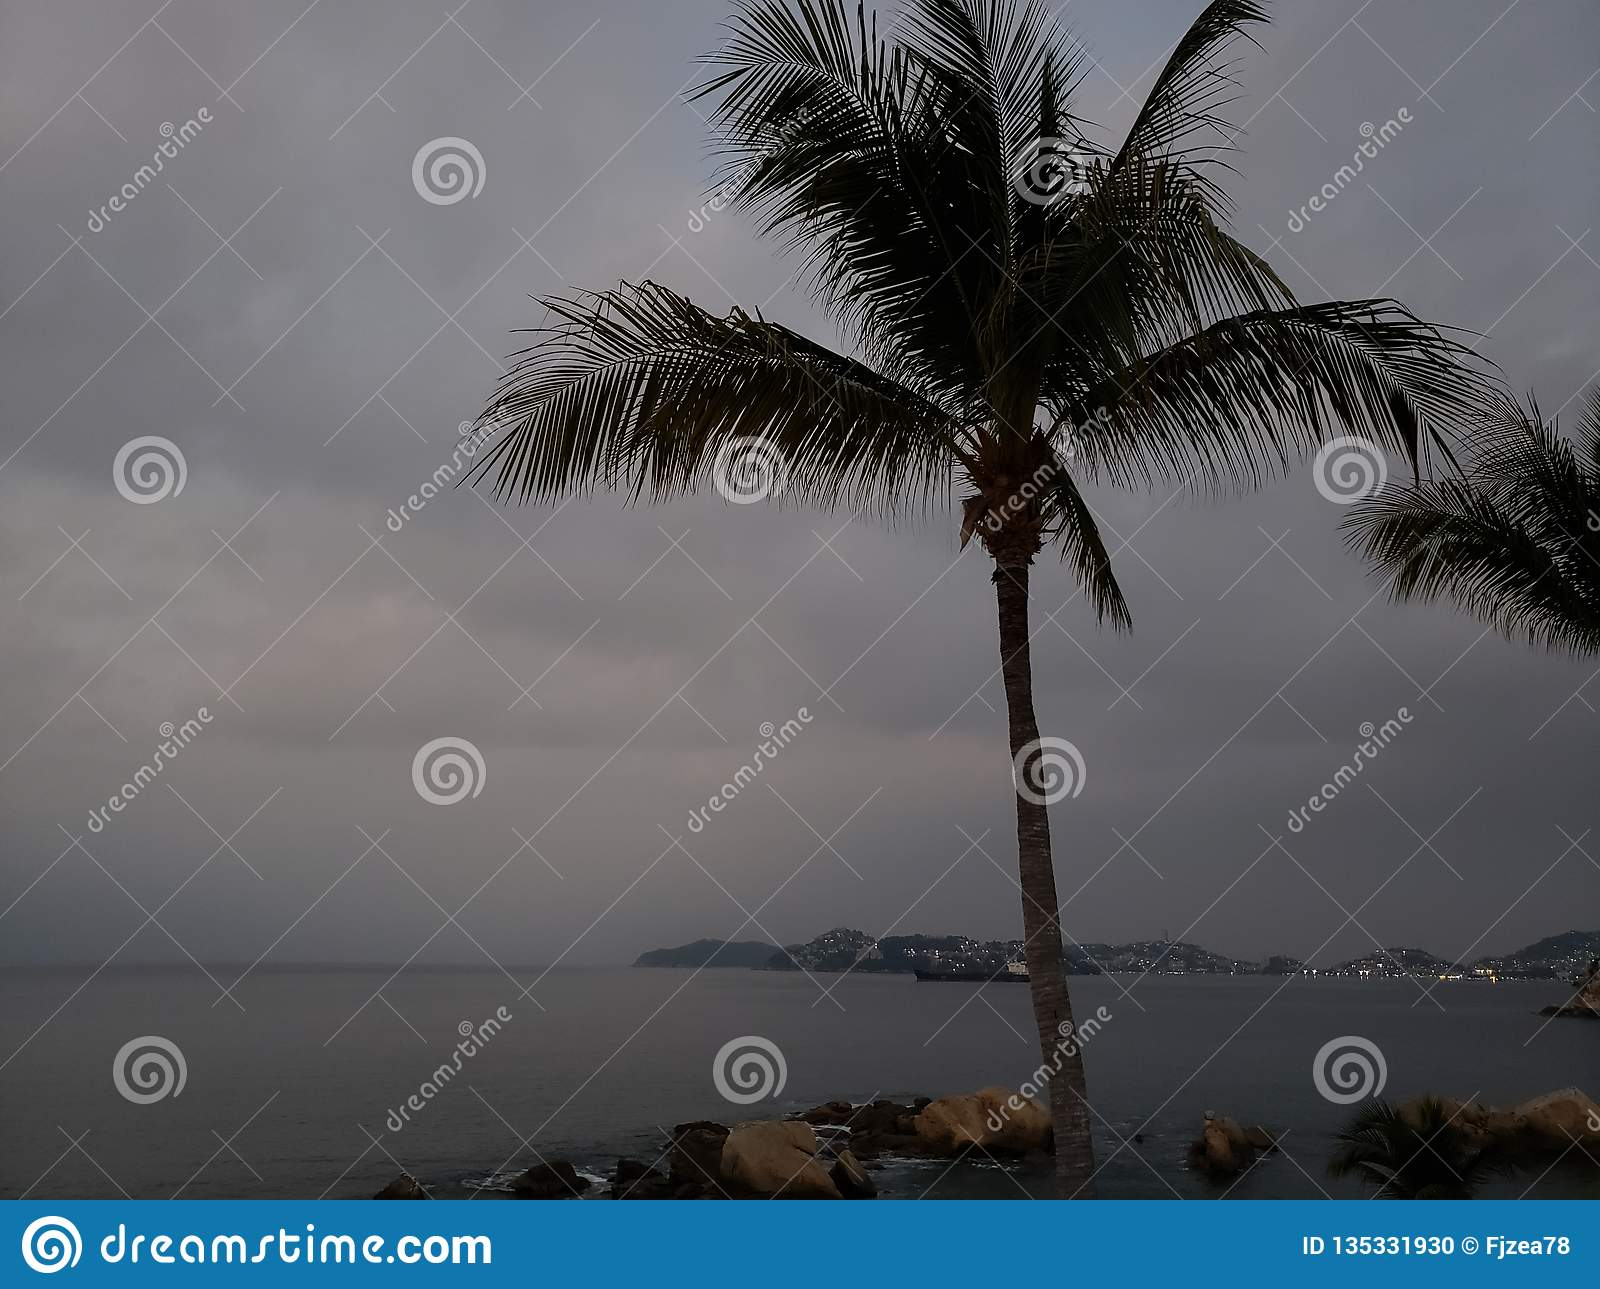 tropical landscape with the silhouette of a palm tree on a cloudy day